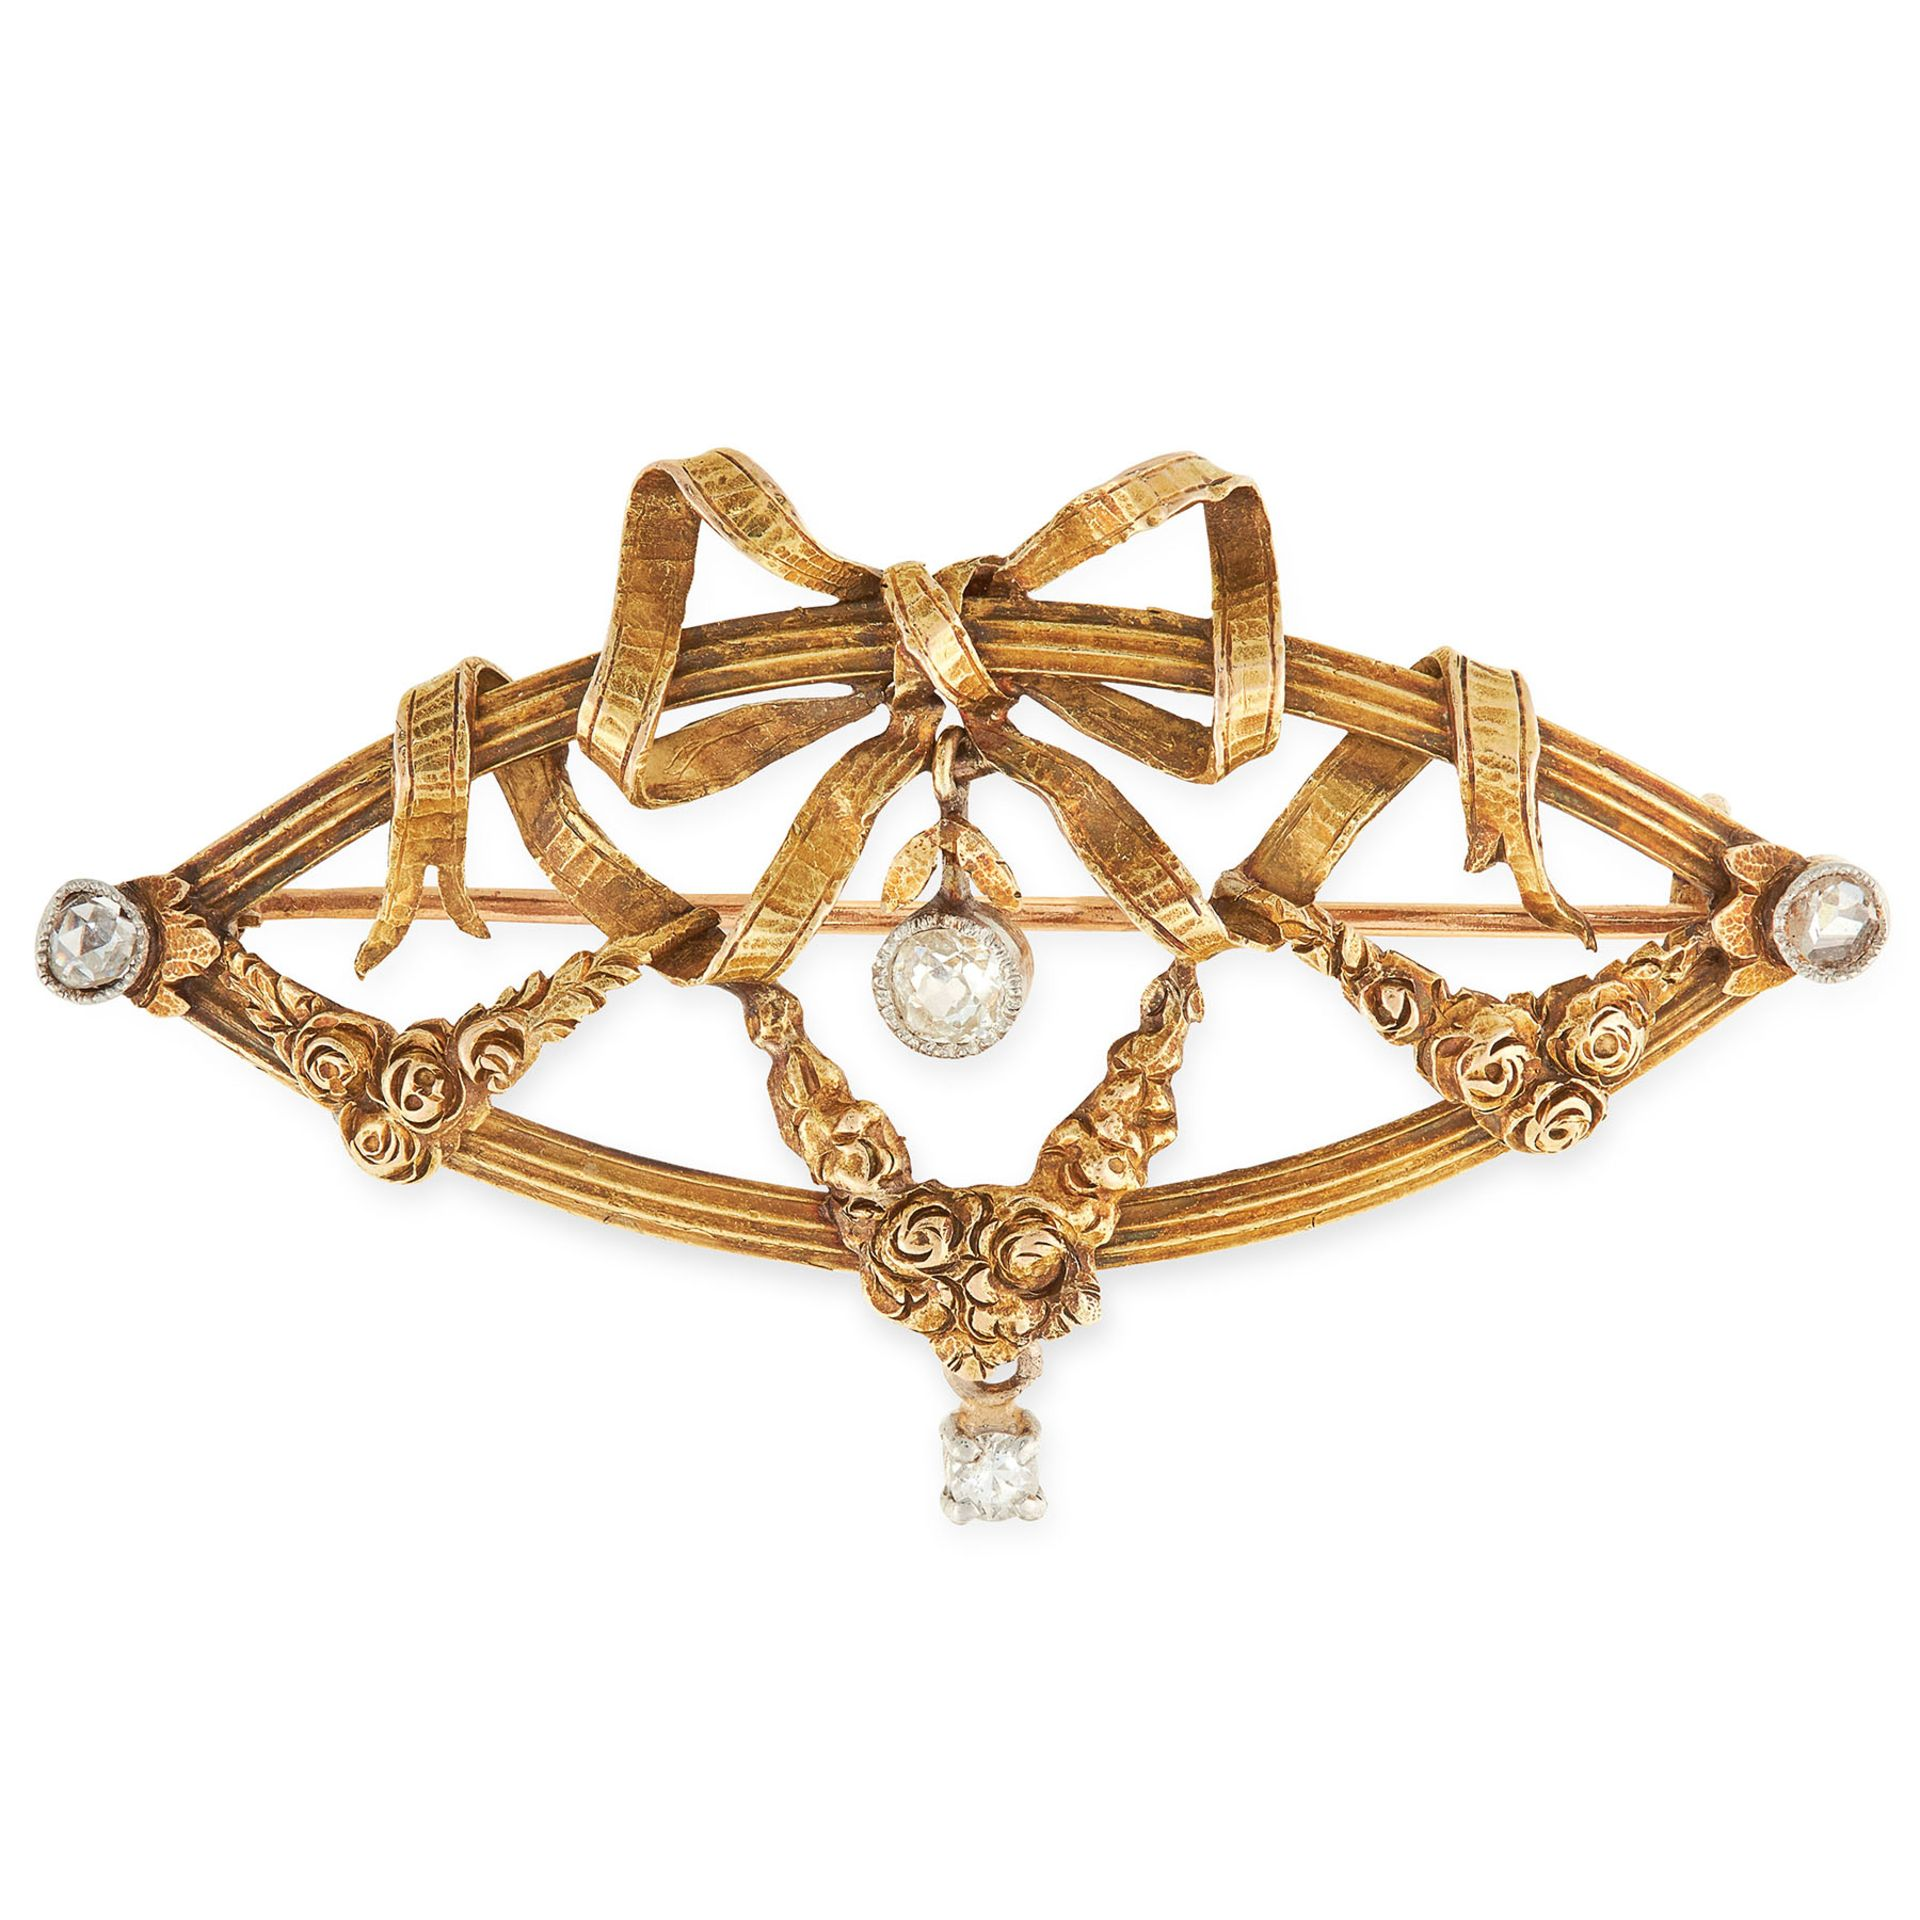 AN ANTIQUE DIAMOND BROOCH in yellow gold, the nanette shaped body formed of a reeded border set with